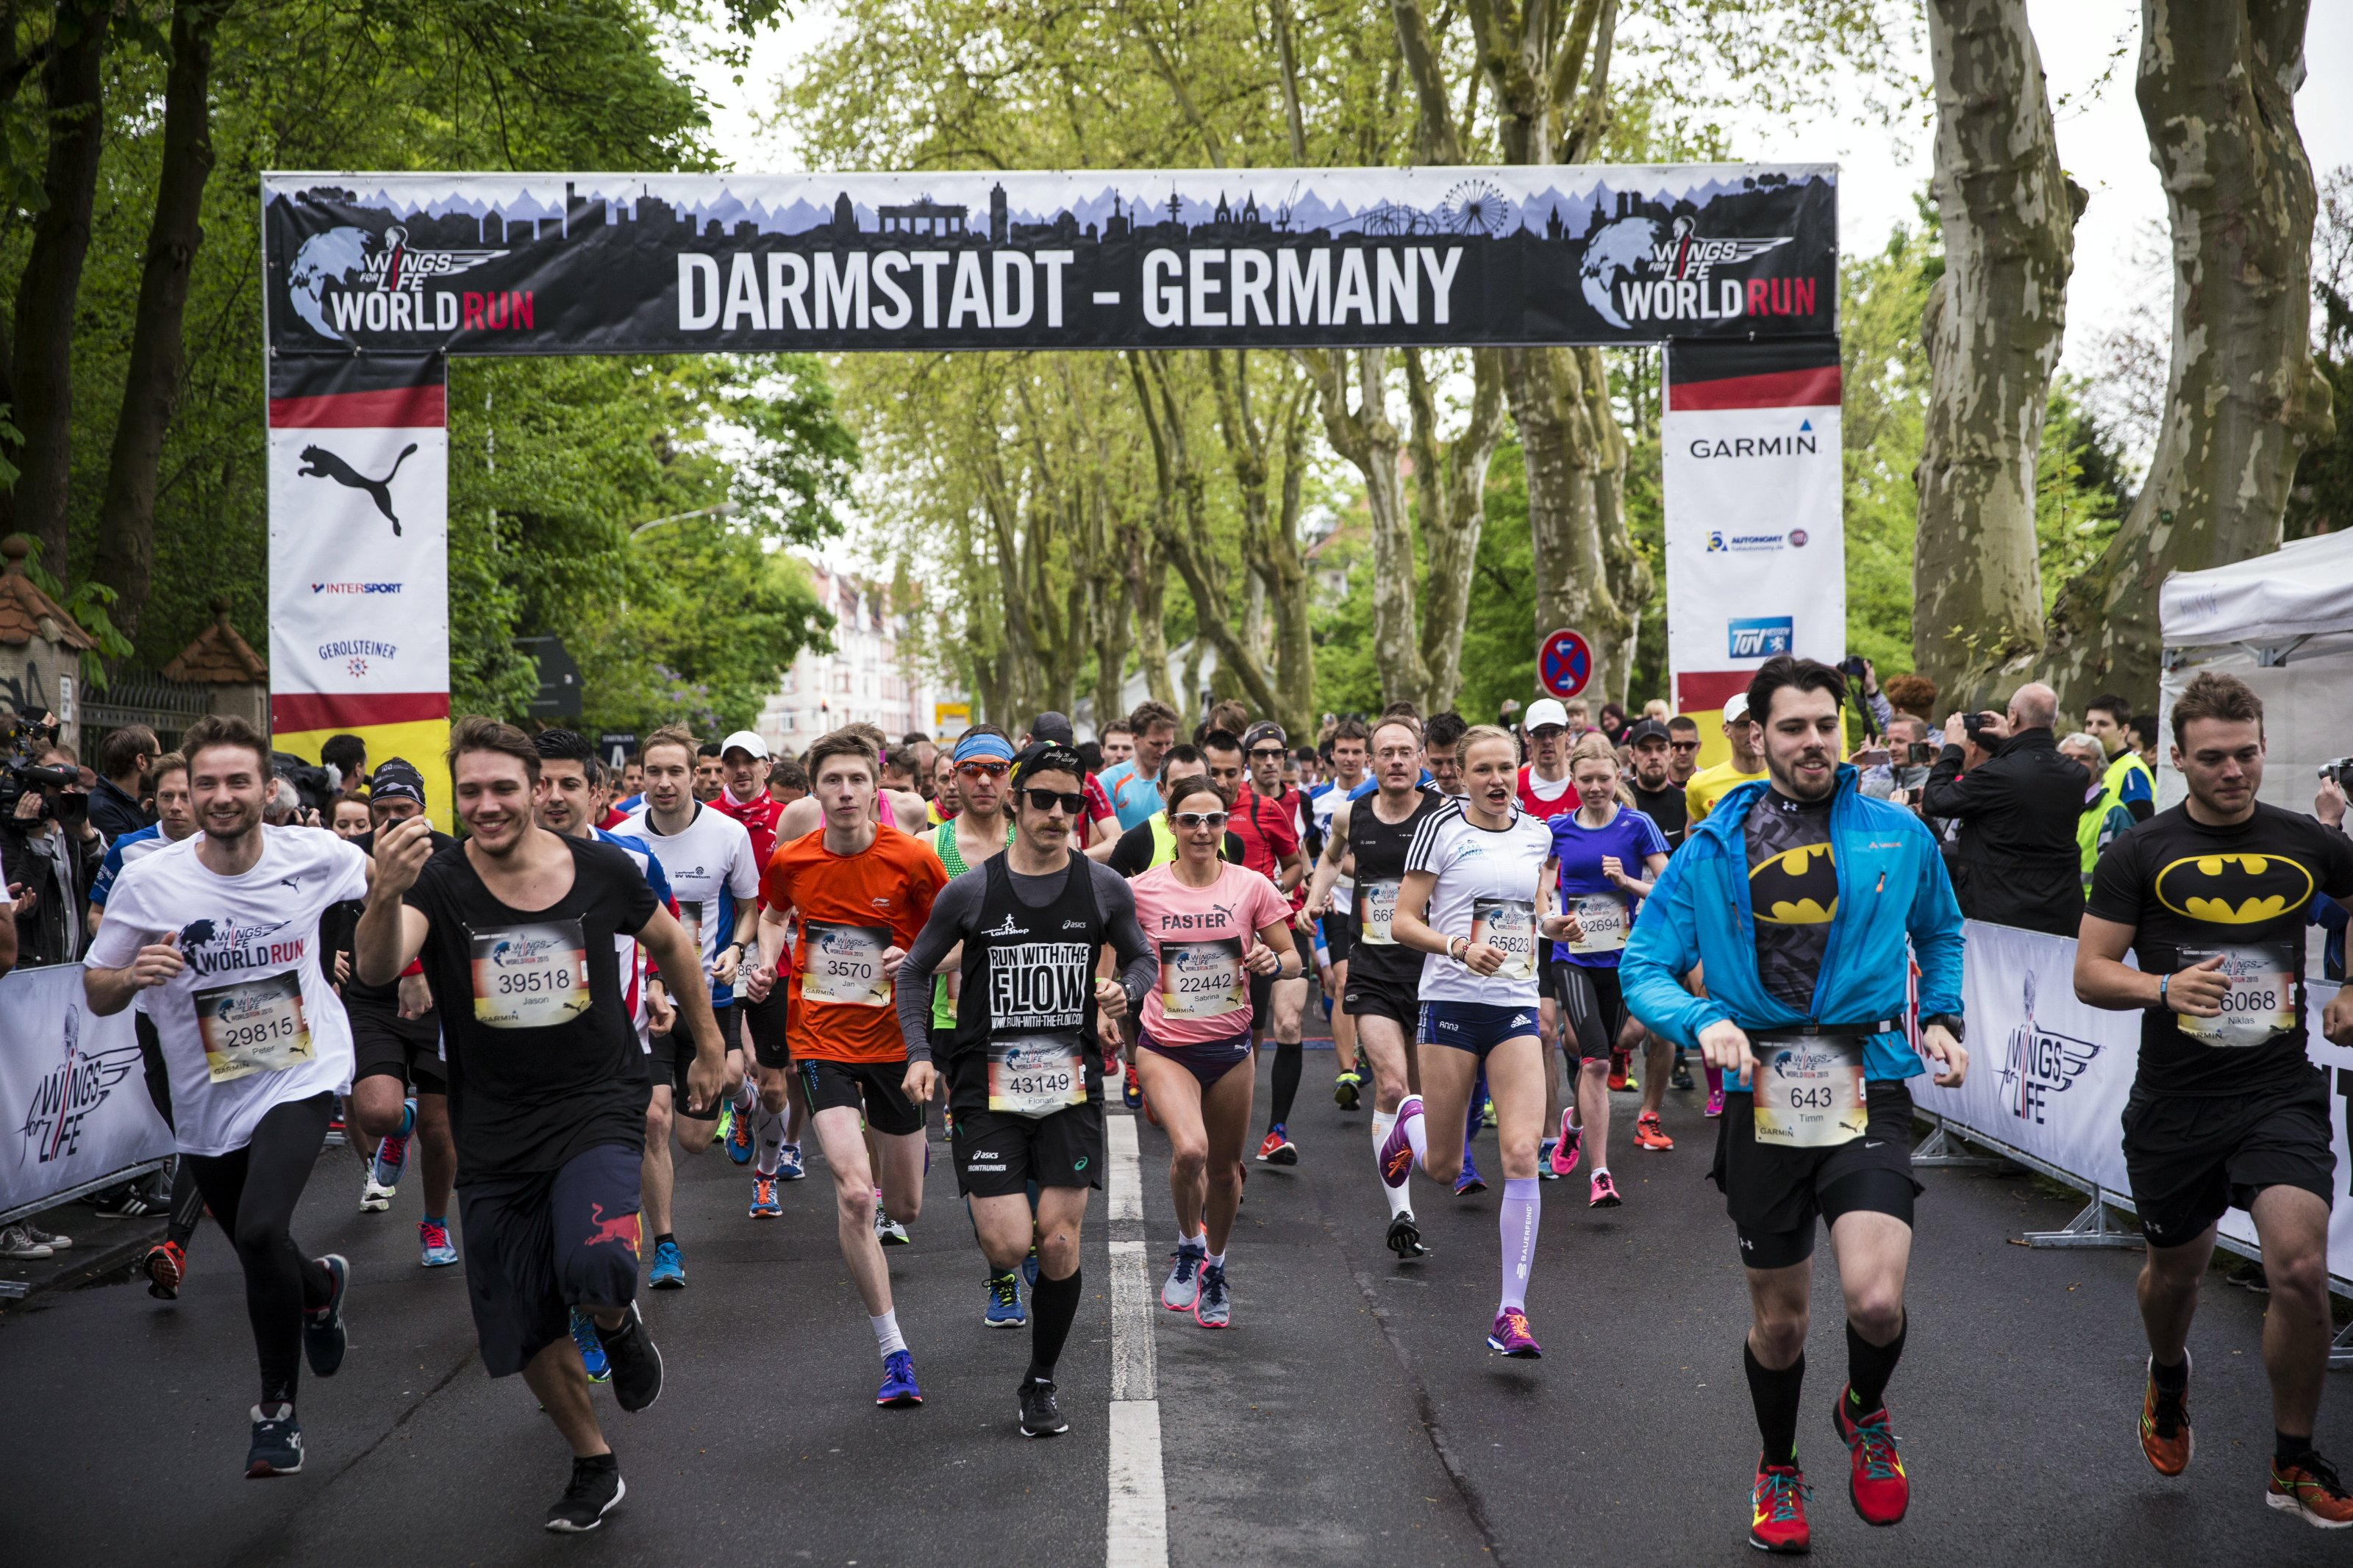 Wings for Life World Run 2015 in Darmstadt. Vorne weg Flo. Foto: Hans Herbig for Wings for Life World Run / Red Bull Content Pool.